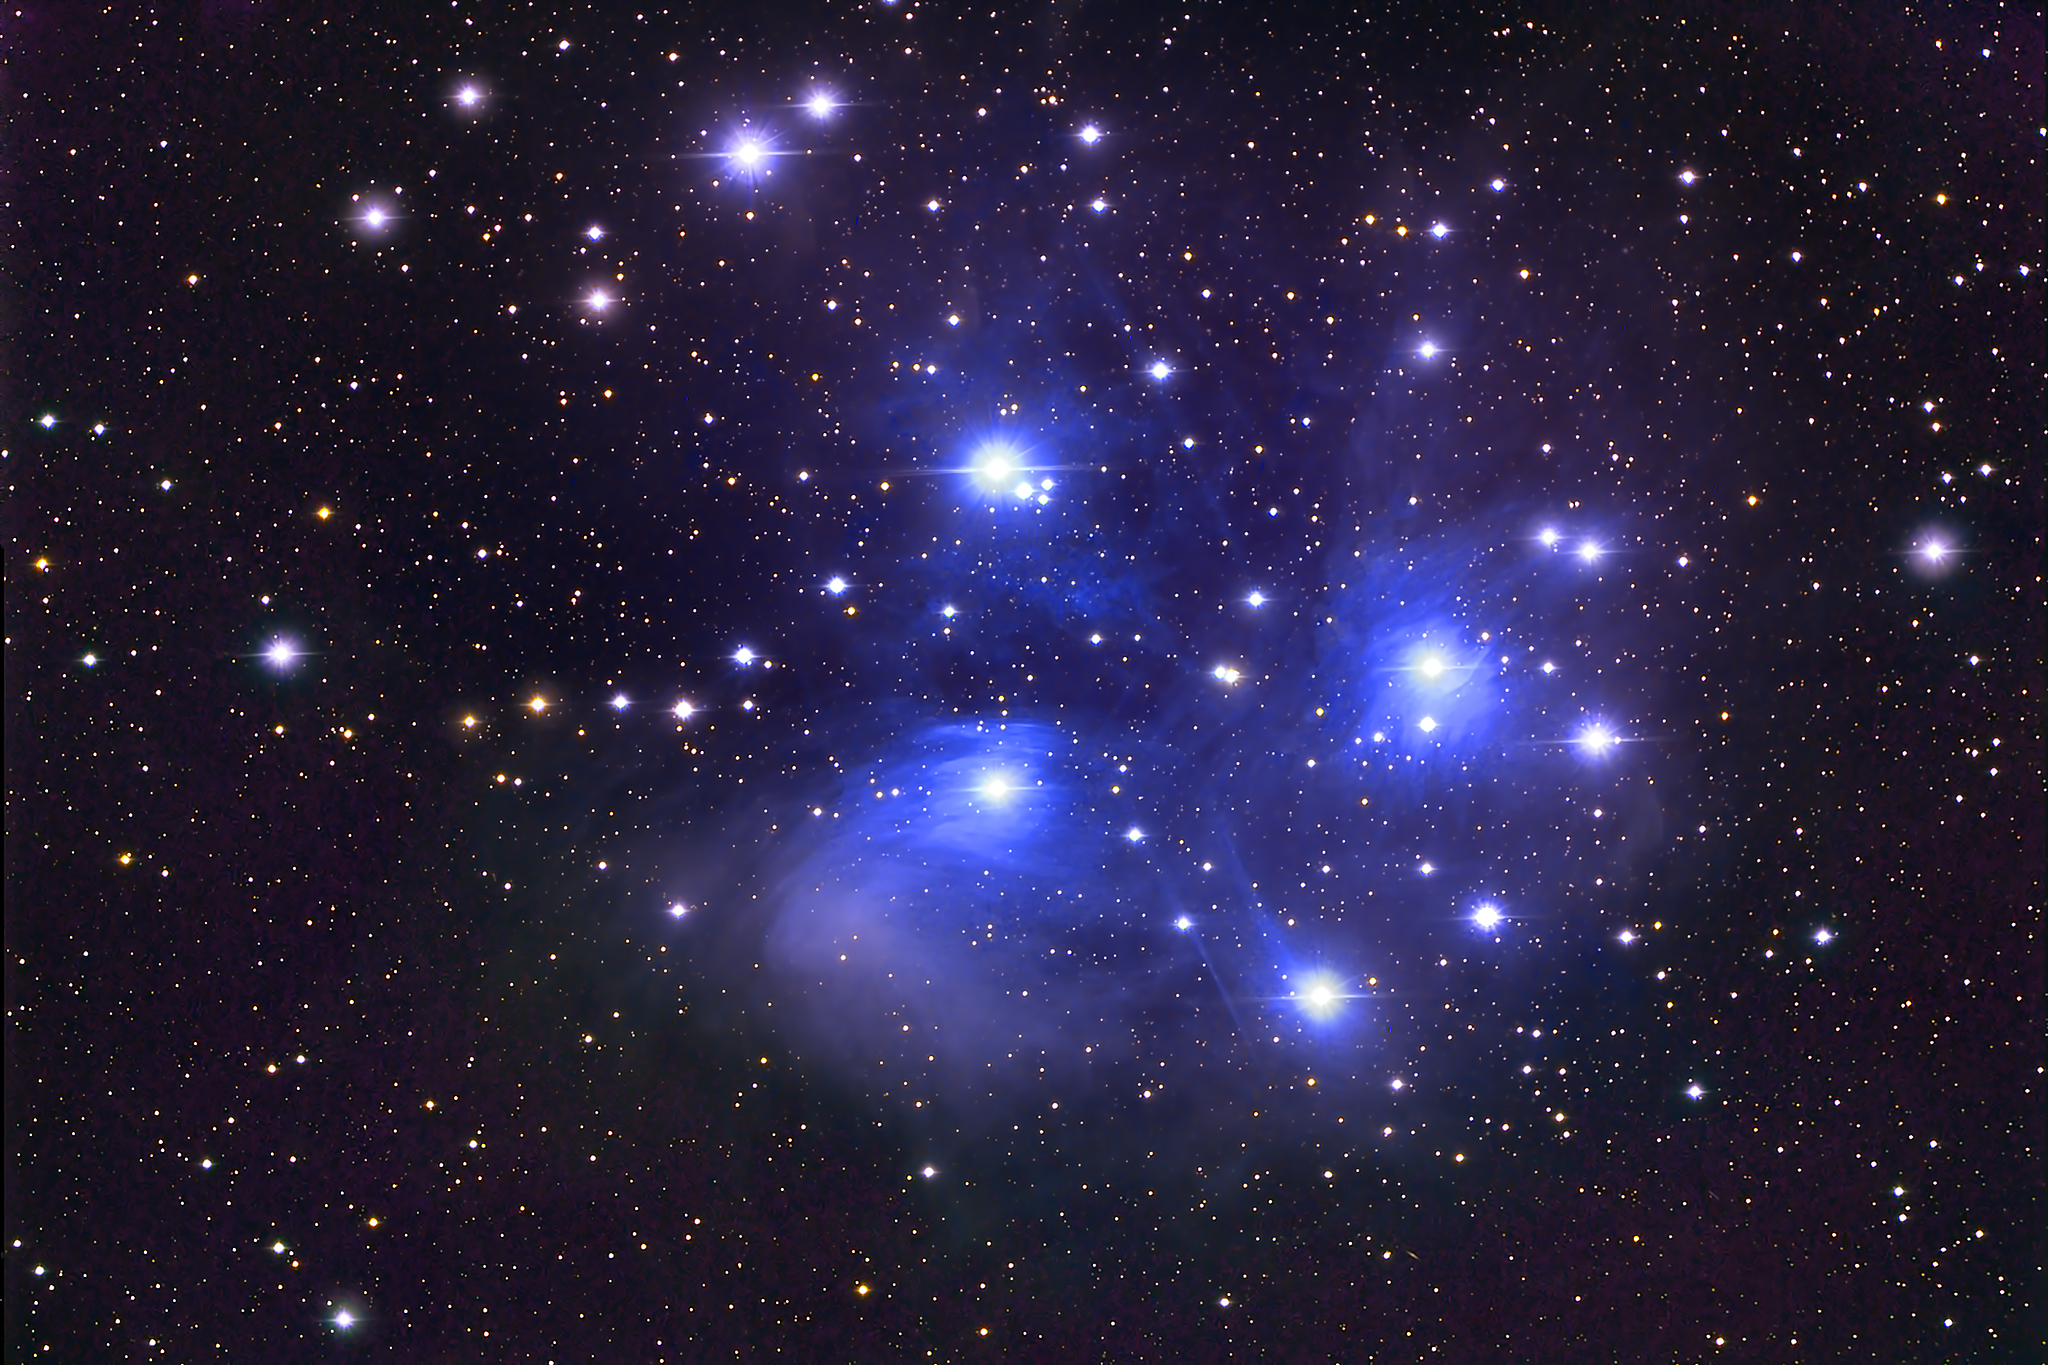 The Pleiades - several blue stars against a black backdrop